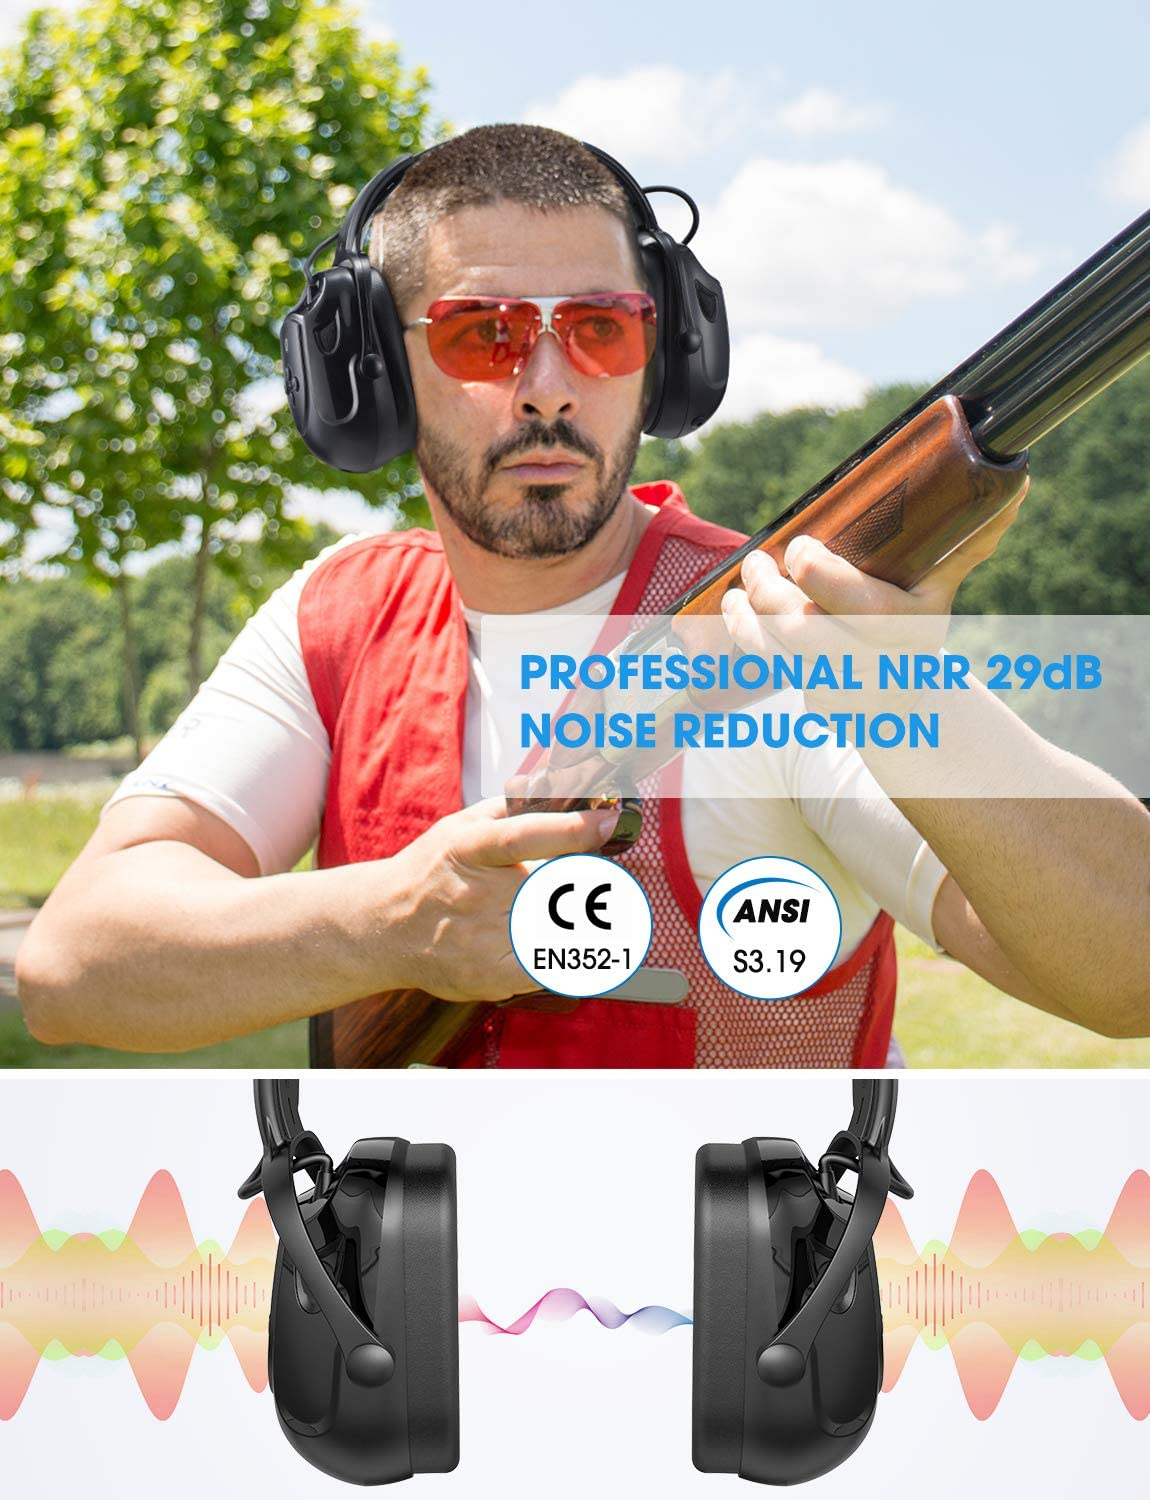 Rechargeable Battery and Volume Control Mpow HP102A Bluetooth Noise Reduction Safety Ear Muffs Built-in Mic Black NRR 29dB//SNR 36dB Adjustable Ear Hearing Protection Headphones with 3.5mm AUX